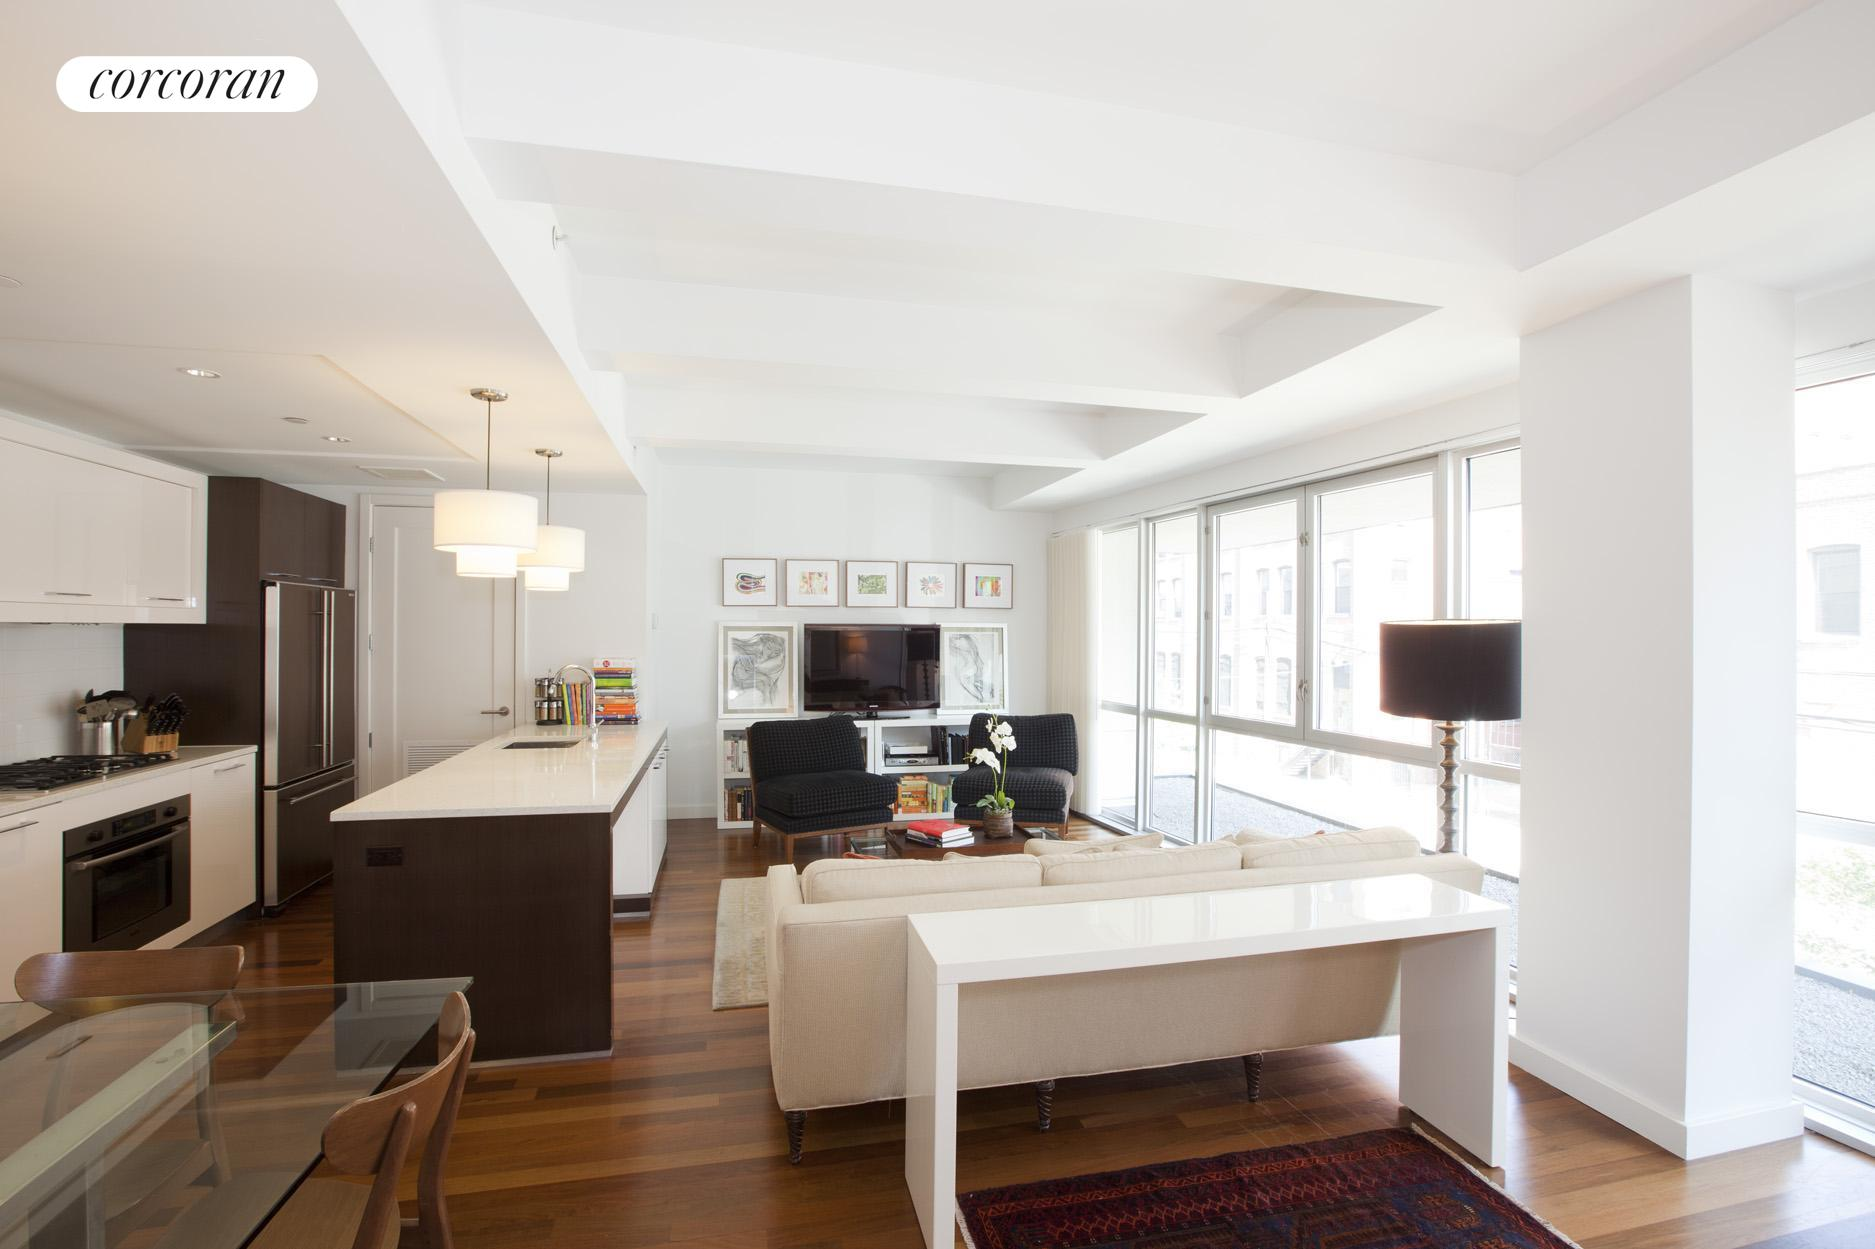 125 North 10th Street, N2B, Bright with a wall of floor-to-ceiling windows